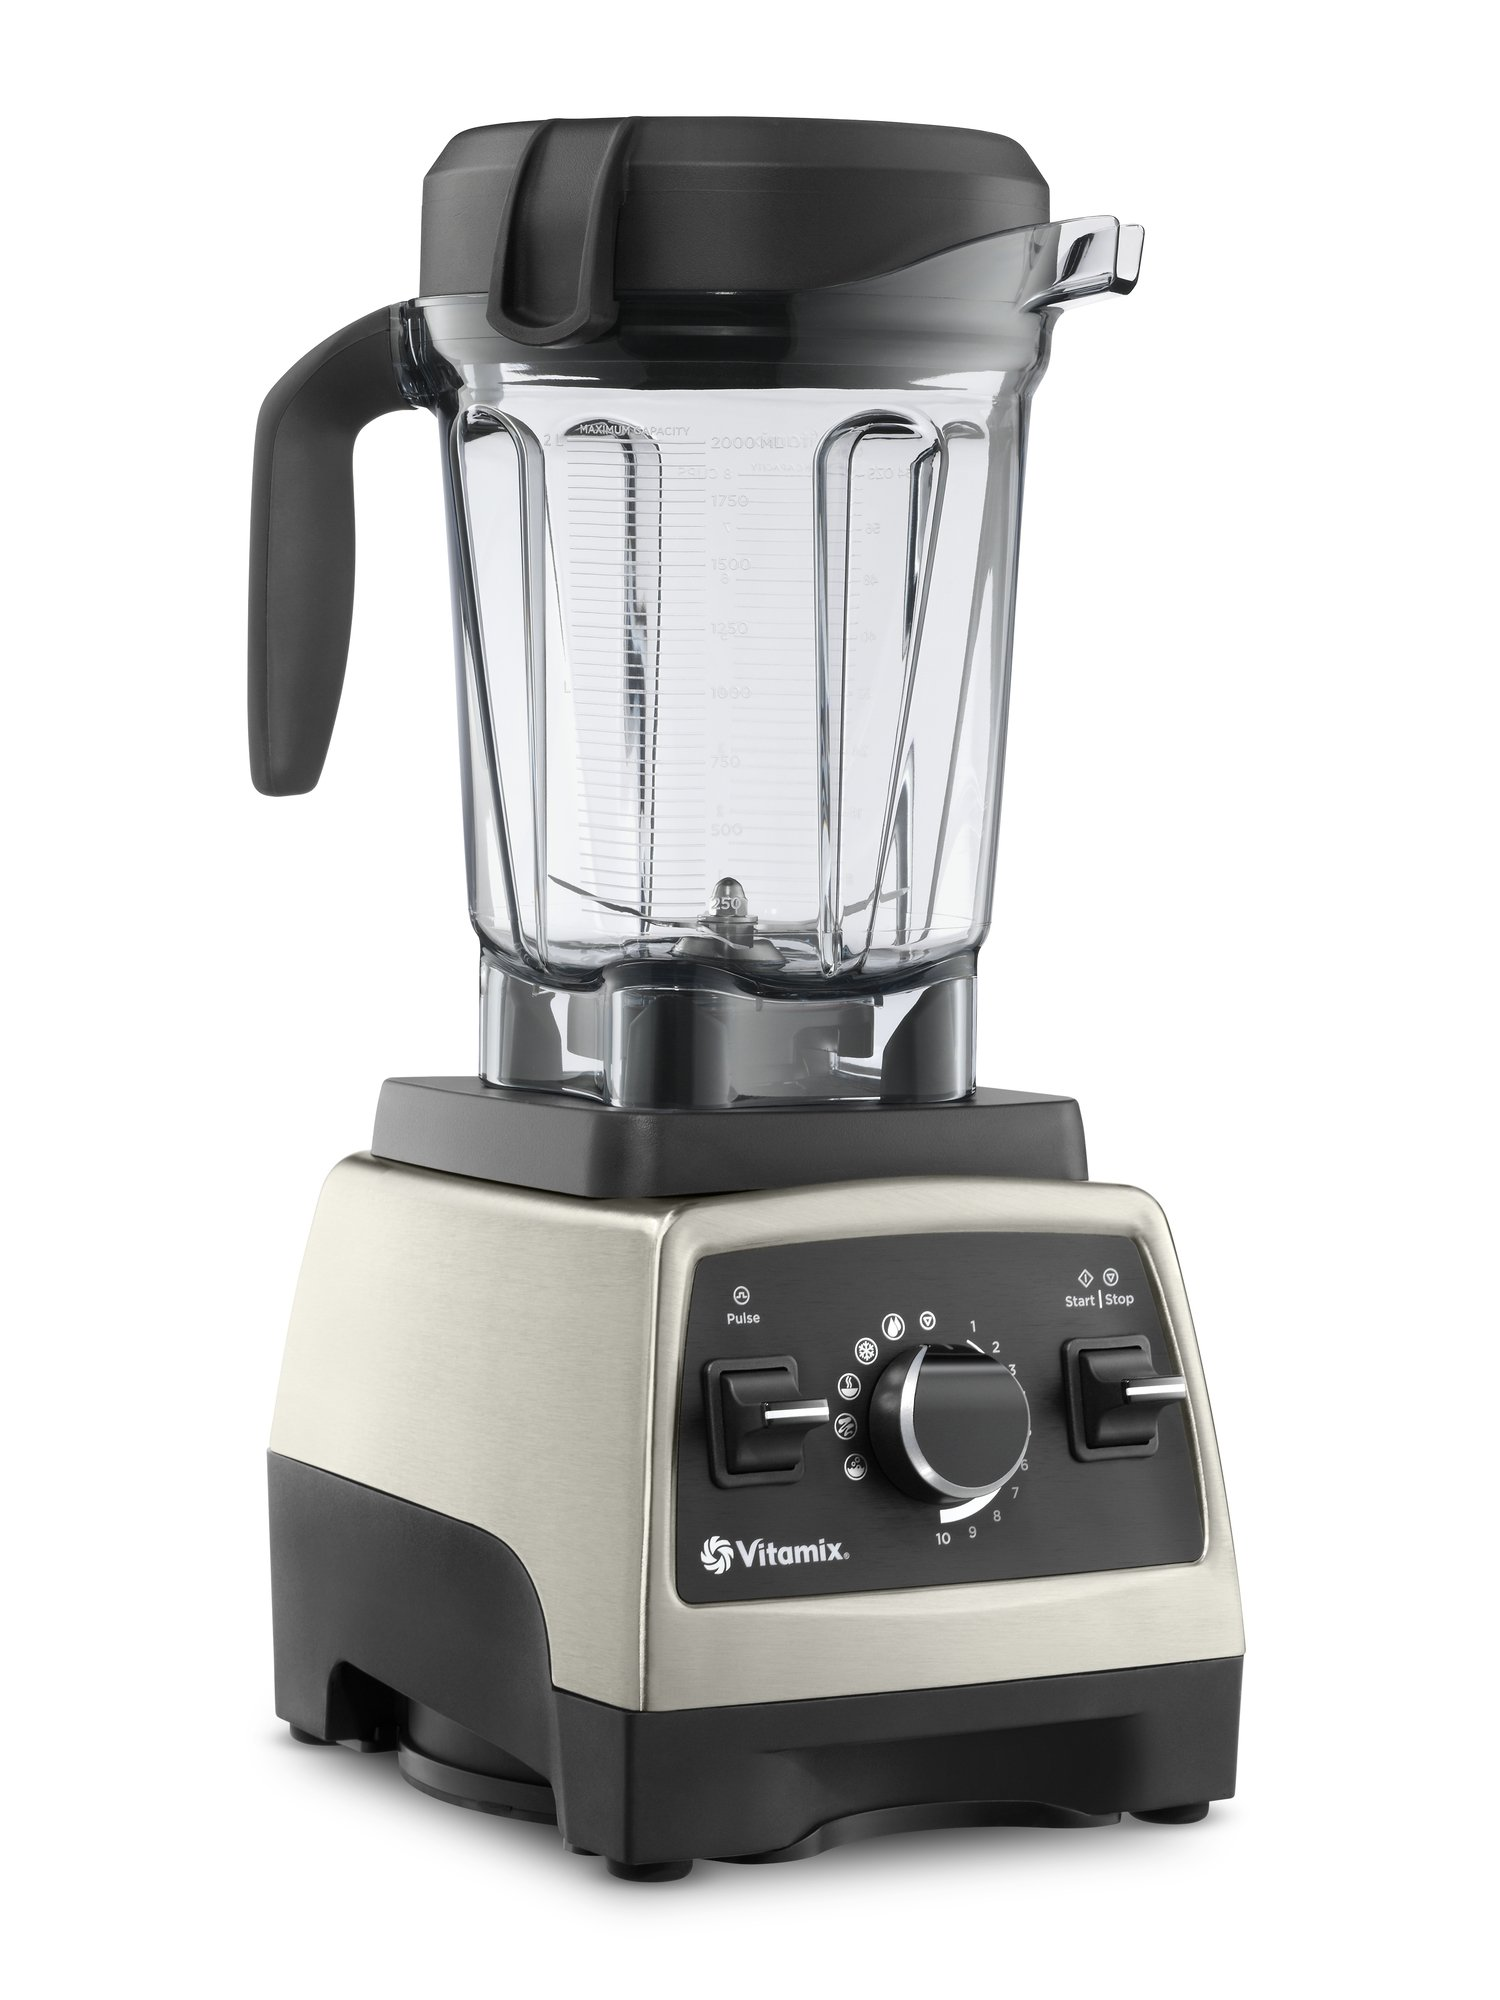 Vitamix Professional Series 750 Blender, Professional-Grade, 64 oz. Low-Profile Container, Heritage by Vitamix